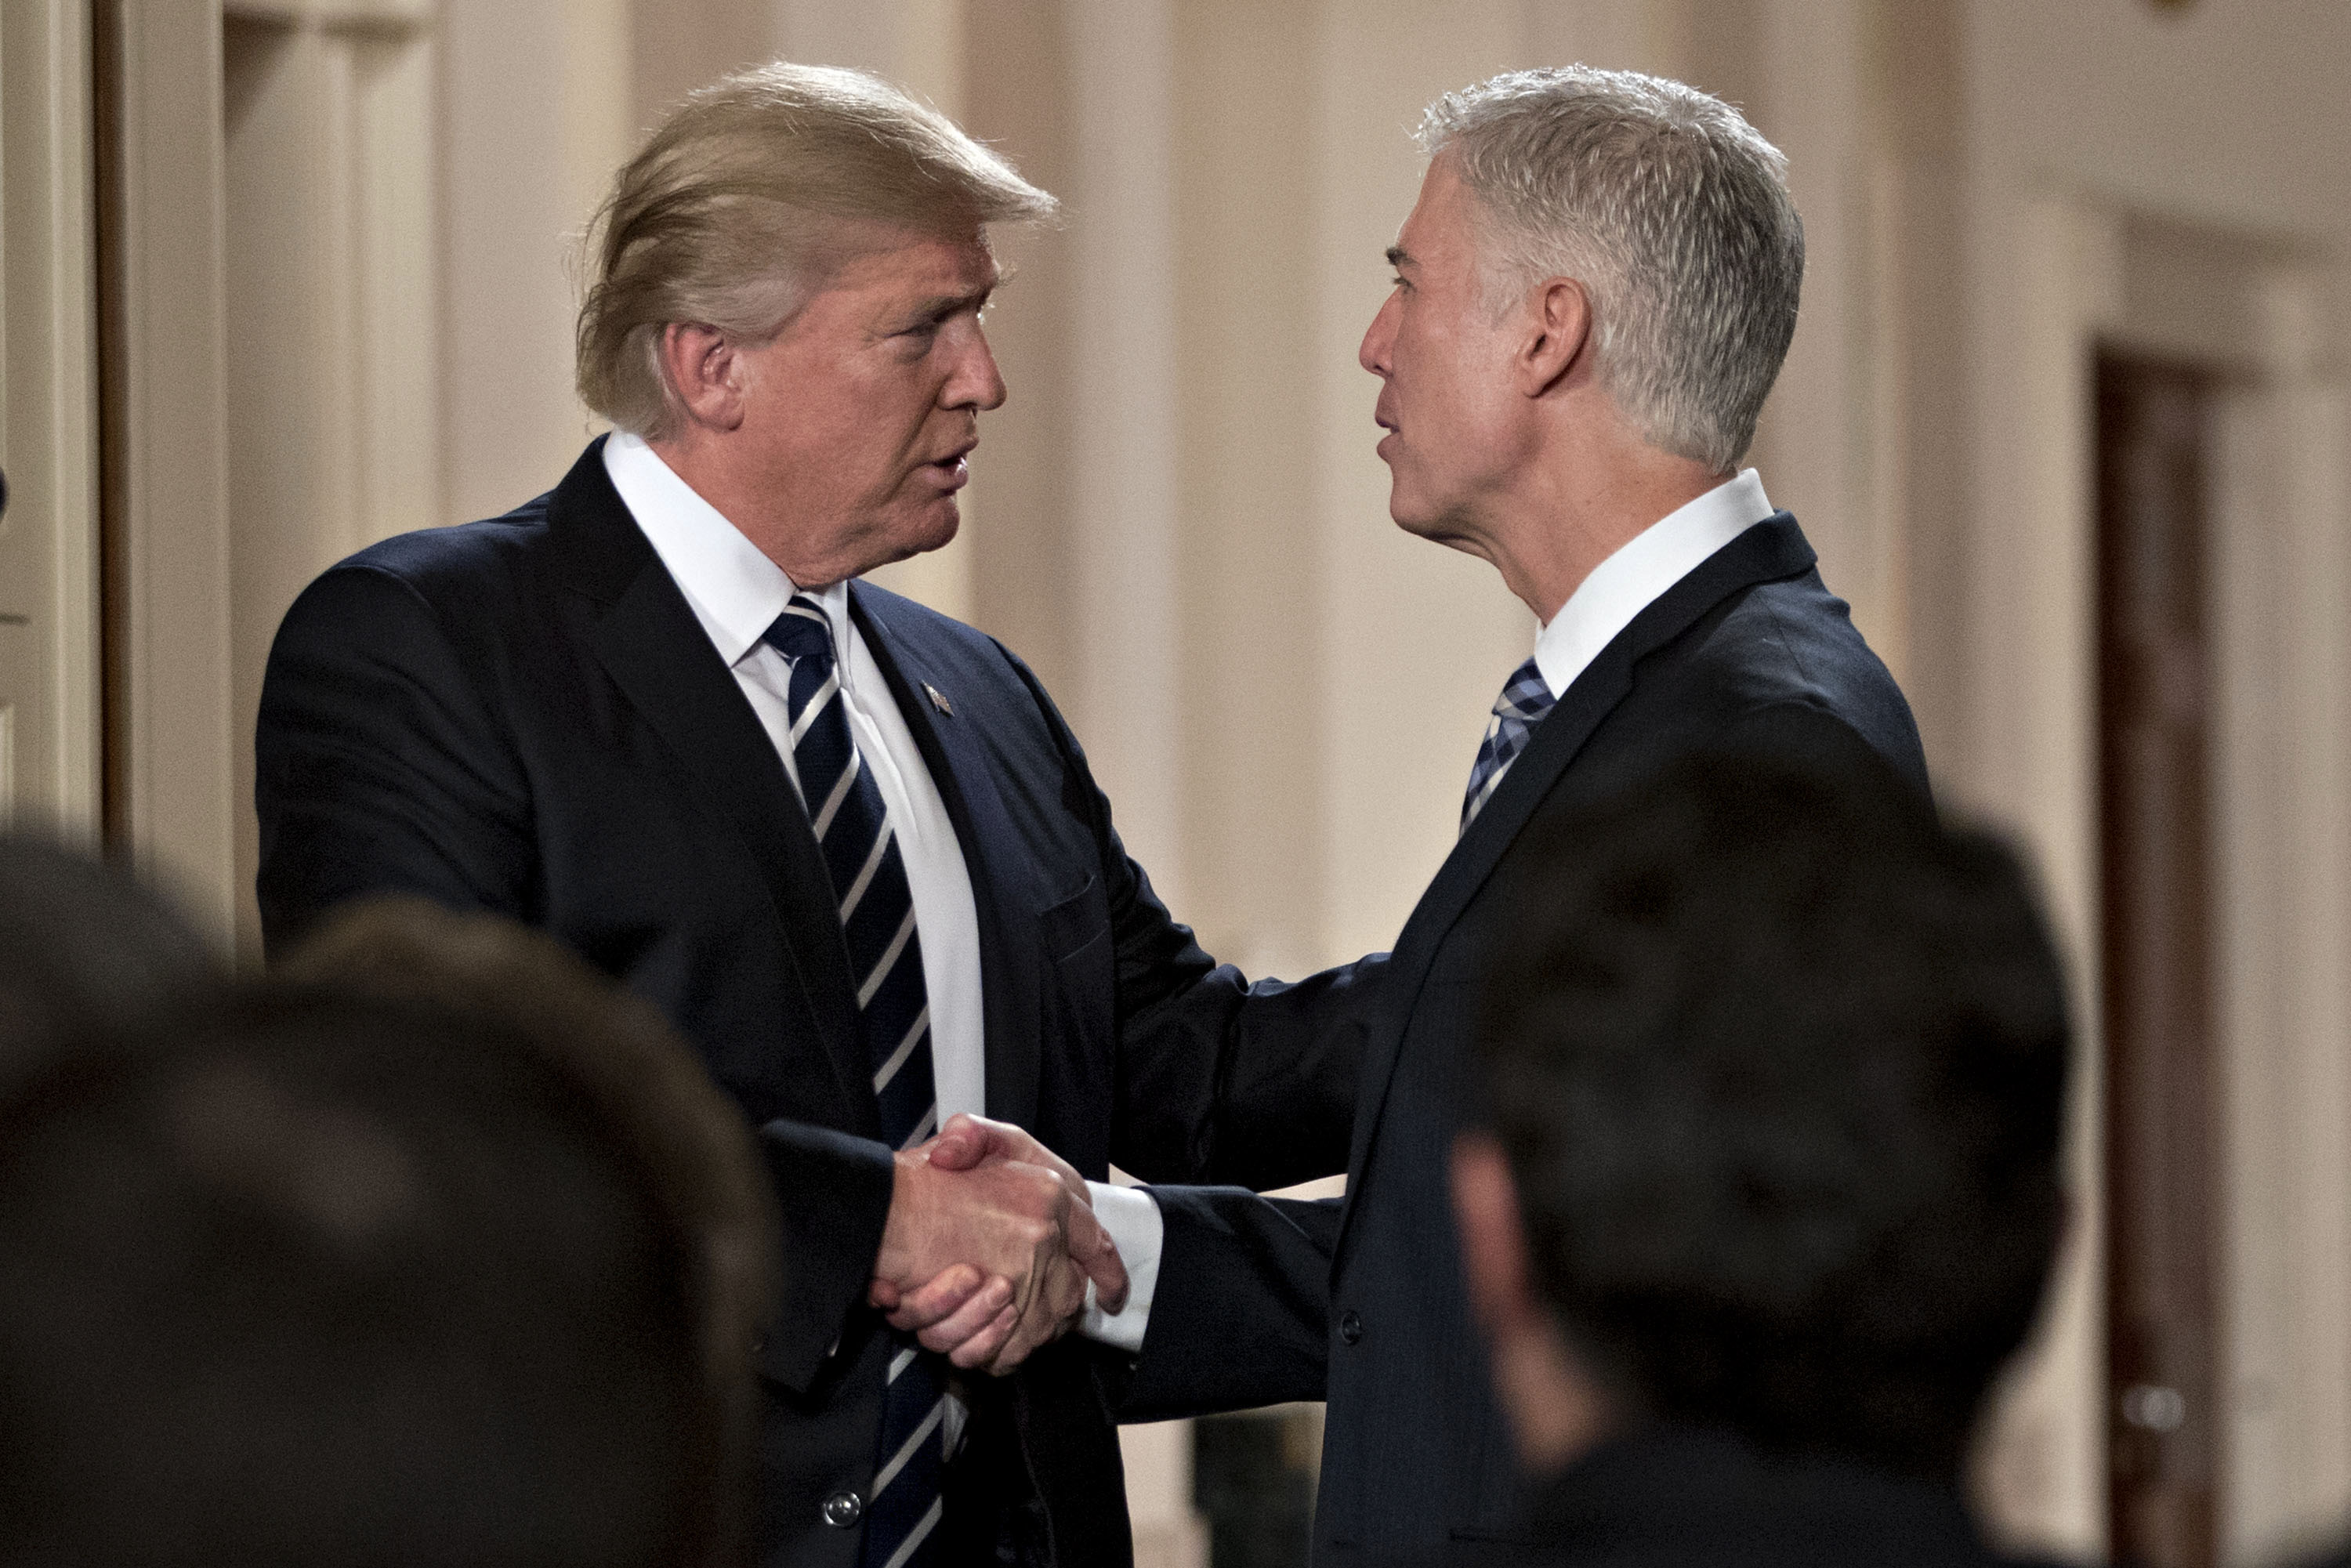 President Donald Trump shakes hands with Neil Gorsuch in the East Room of the White House in Washington, D.C., on Jan. 31, 2017.